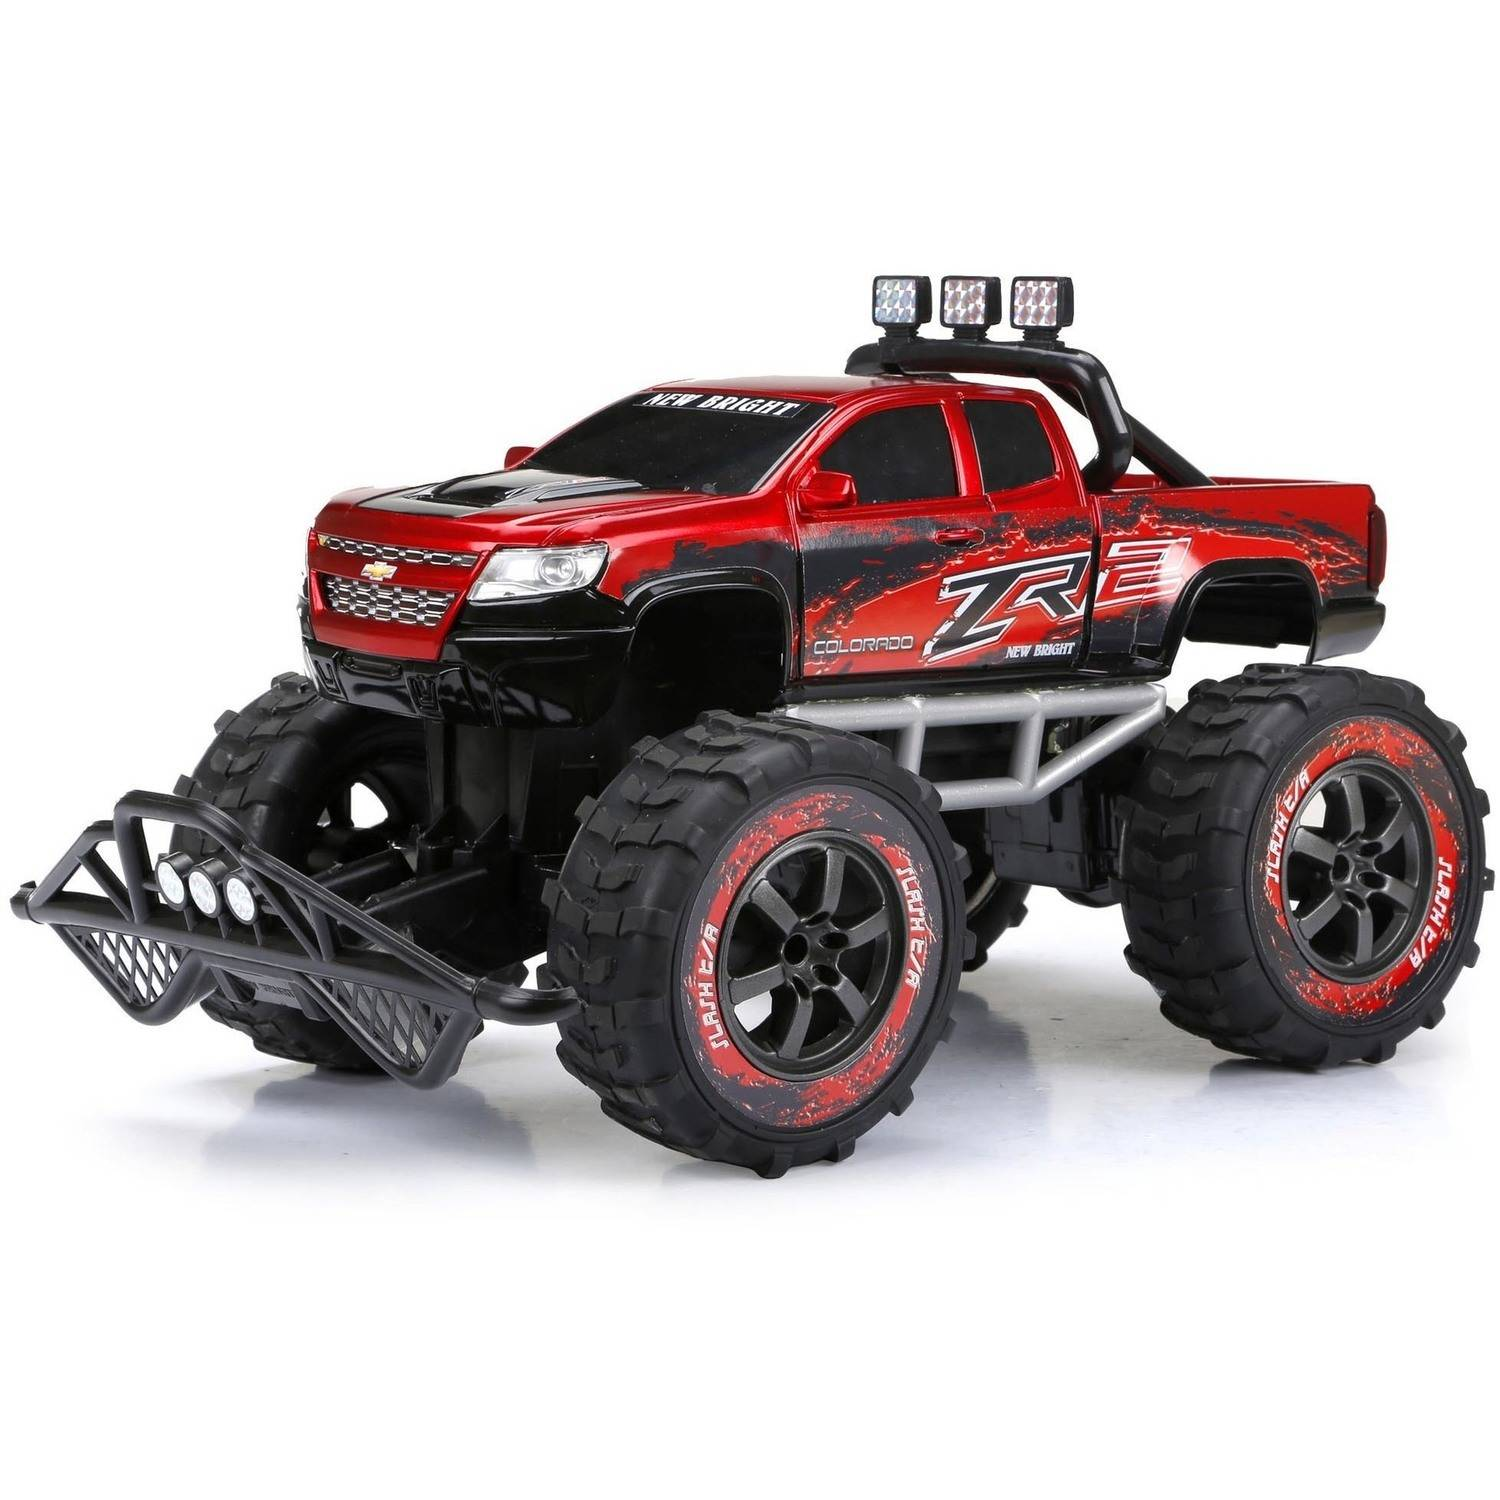 New Bright 1:10 R/C Full-Function 9.6V Colorado, Red